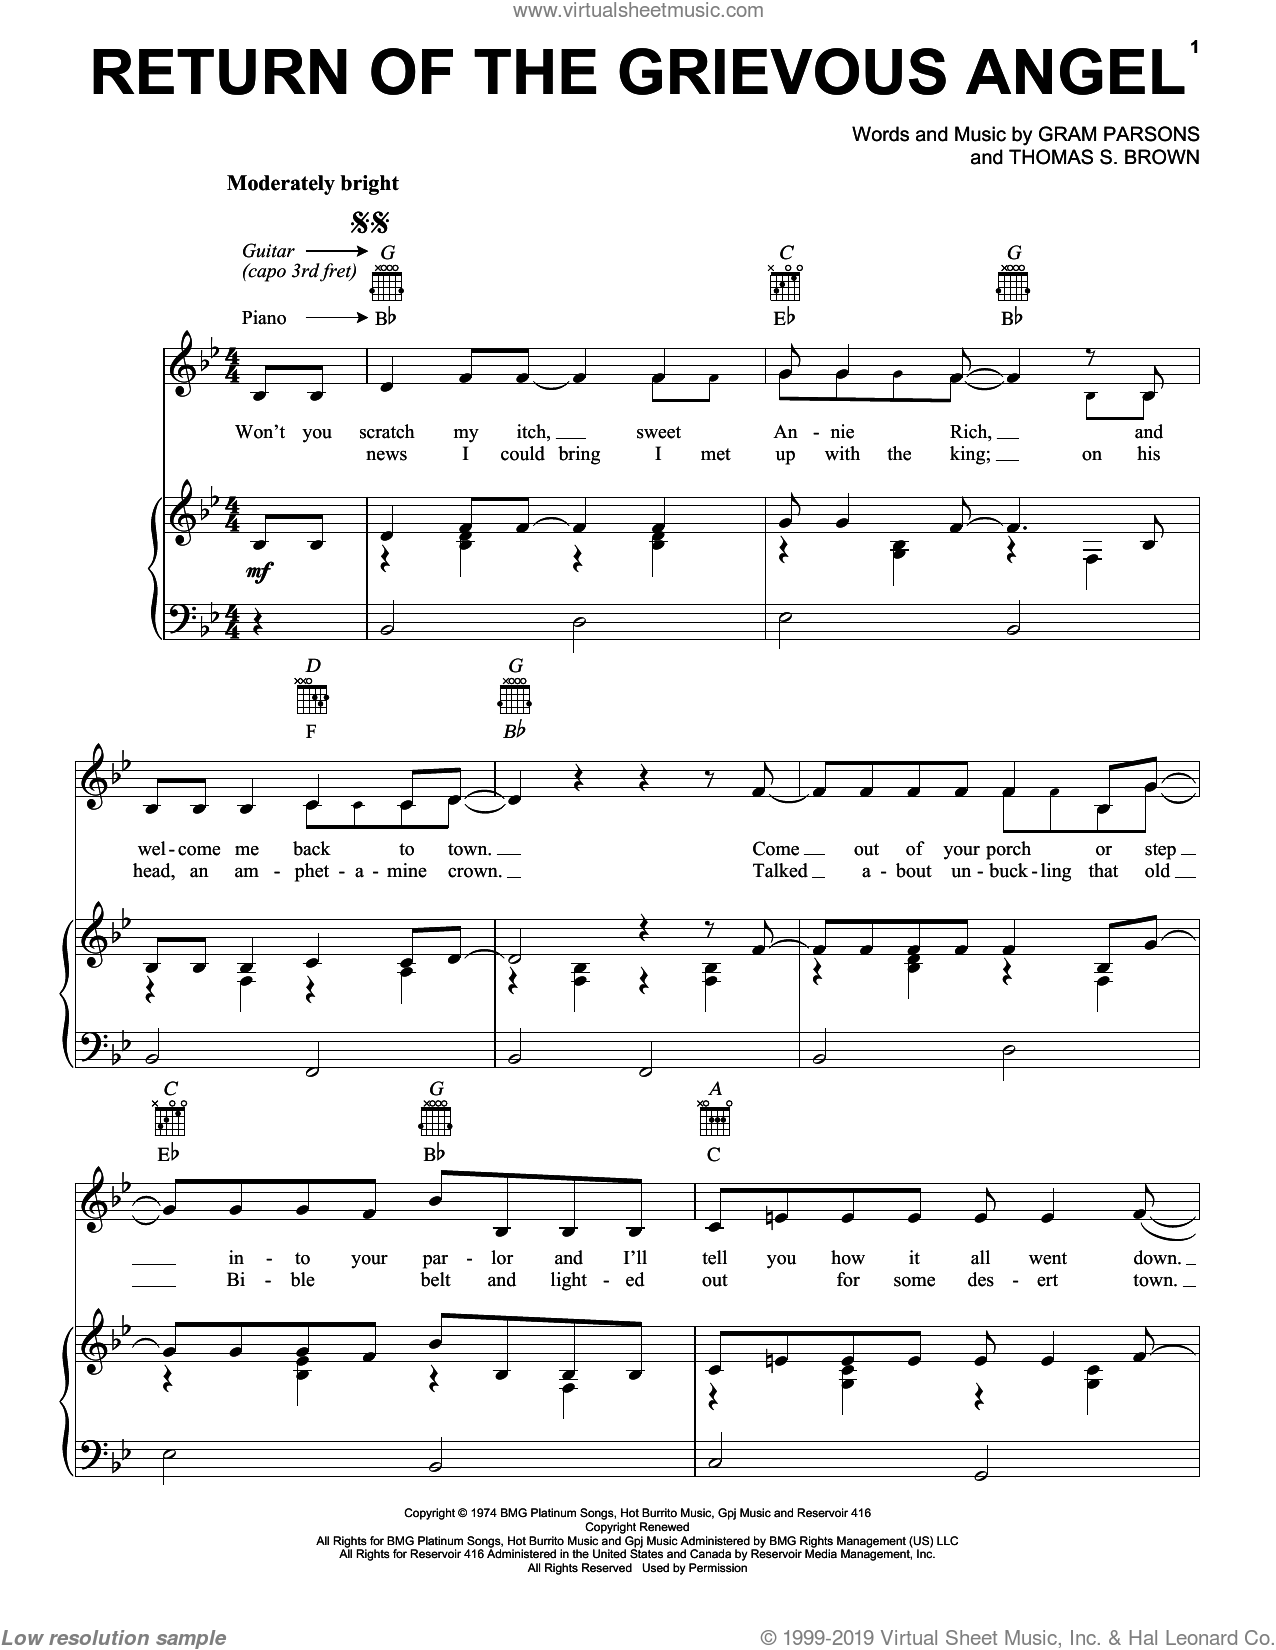 Return Of The Grievous Angel sheet music for voice, piano or guitar by Thomas S. Brown